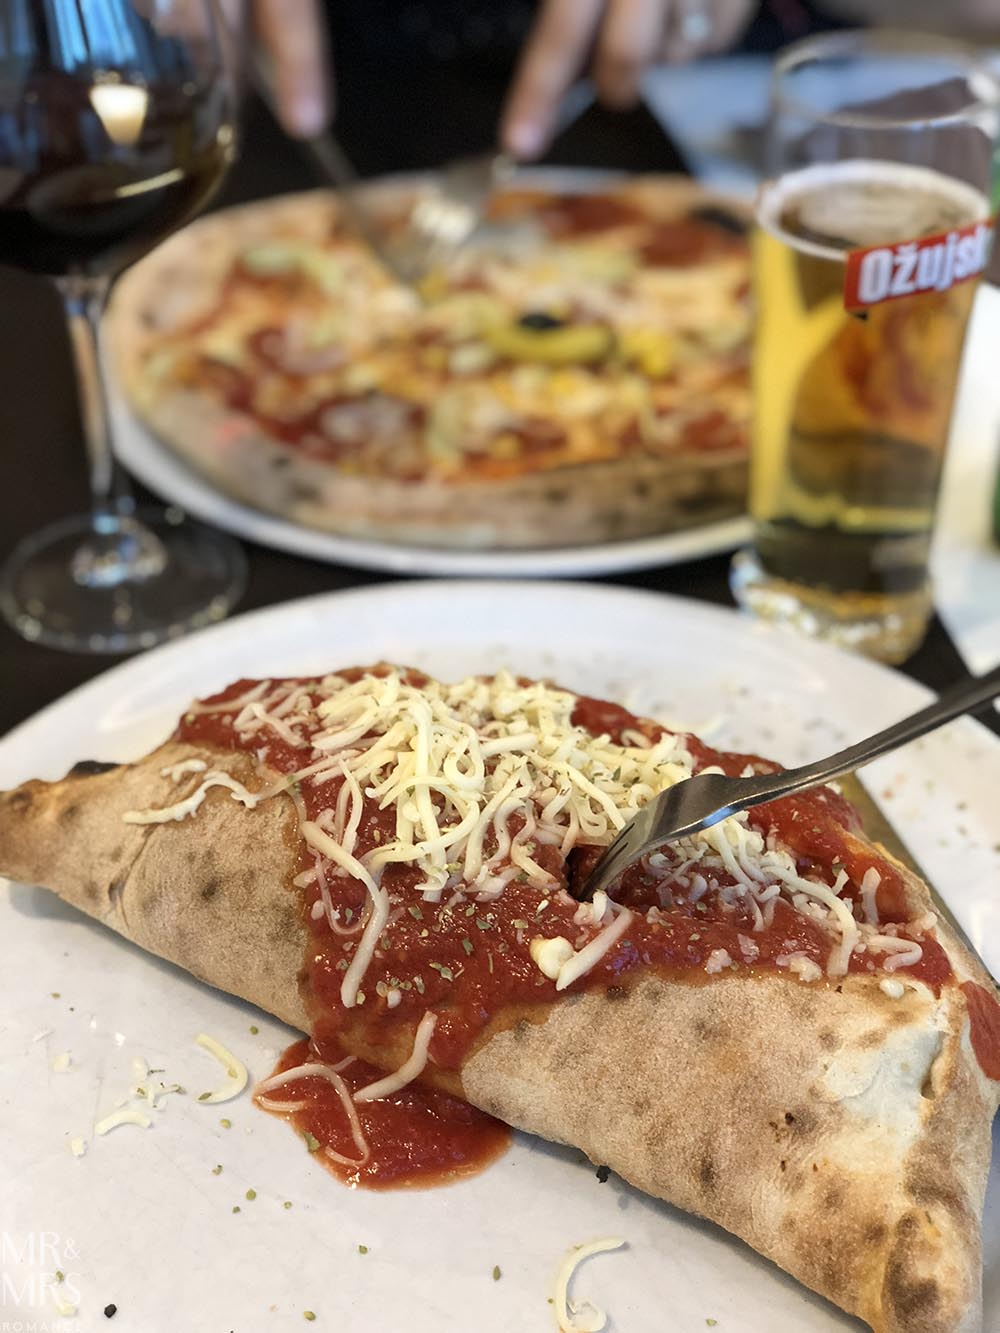 Where to go in Croatia - Pizzeria Ulika, Zminj